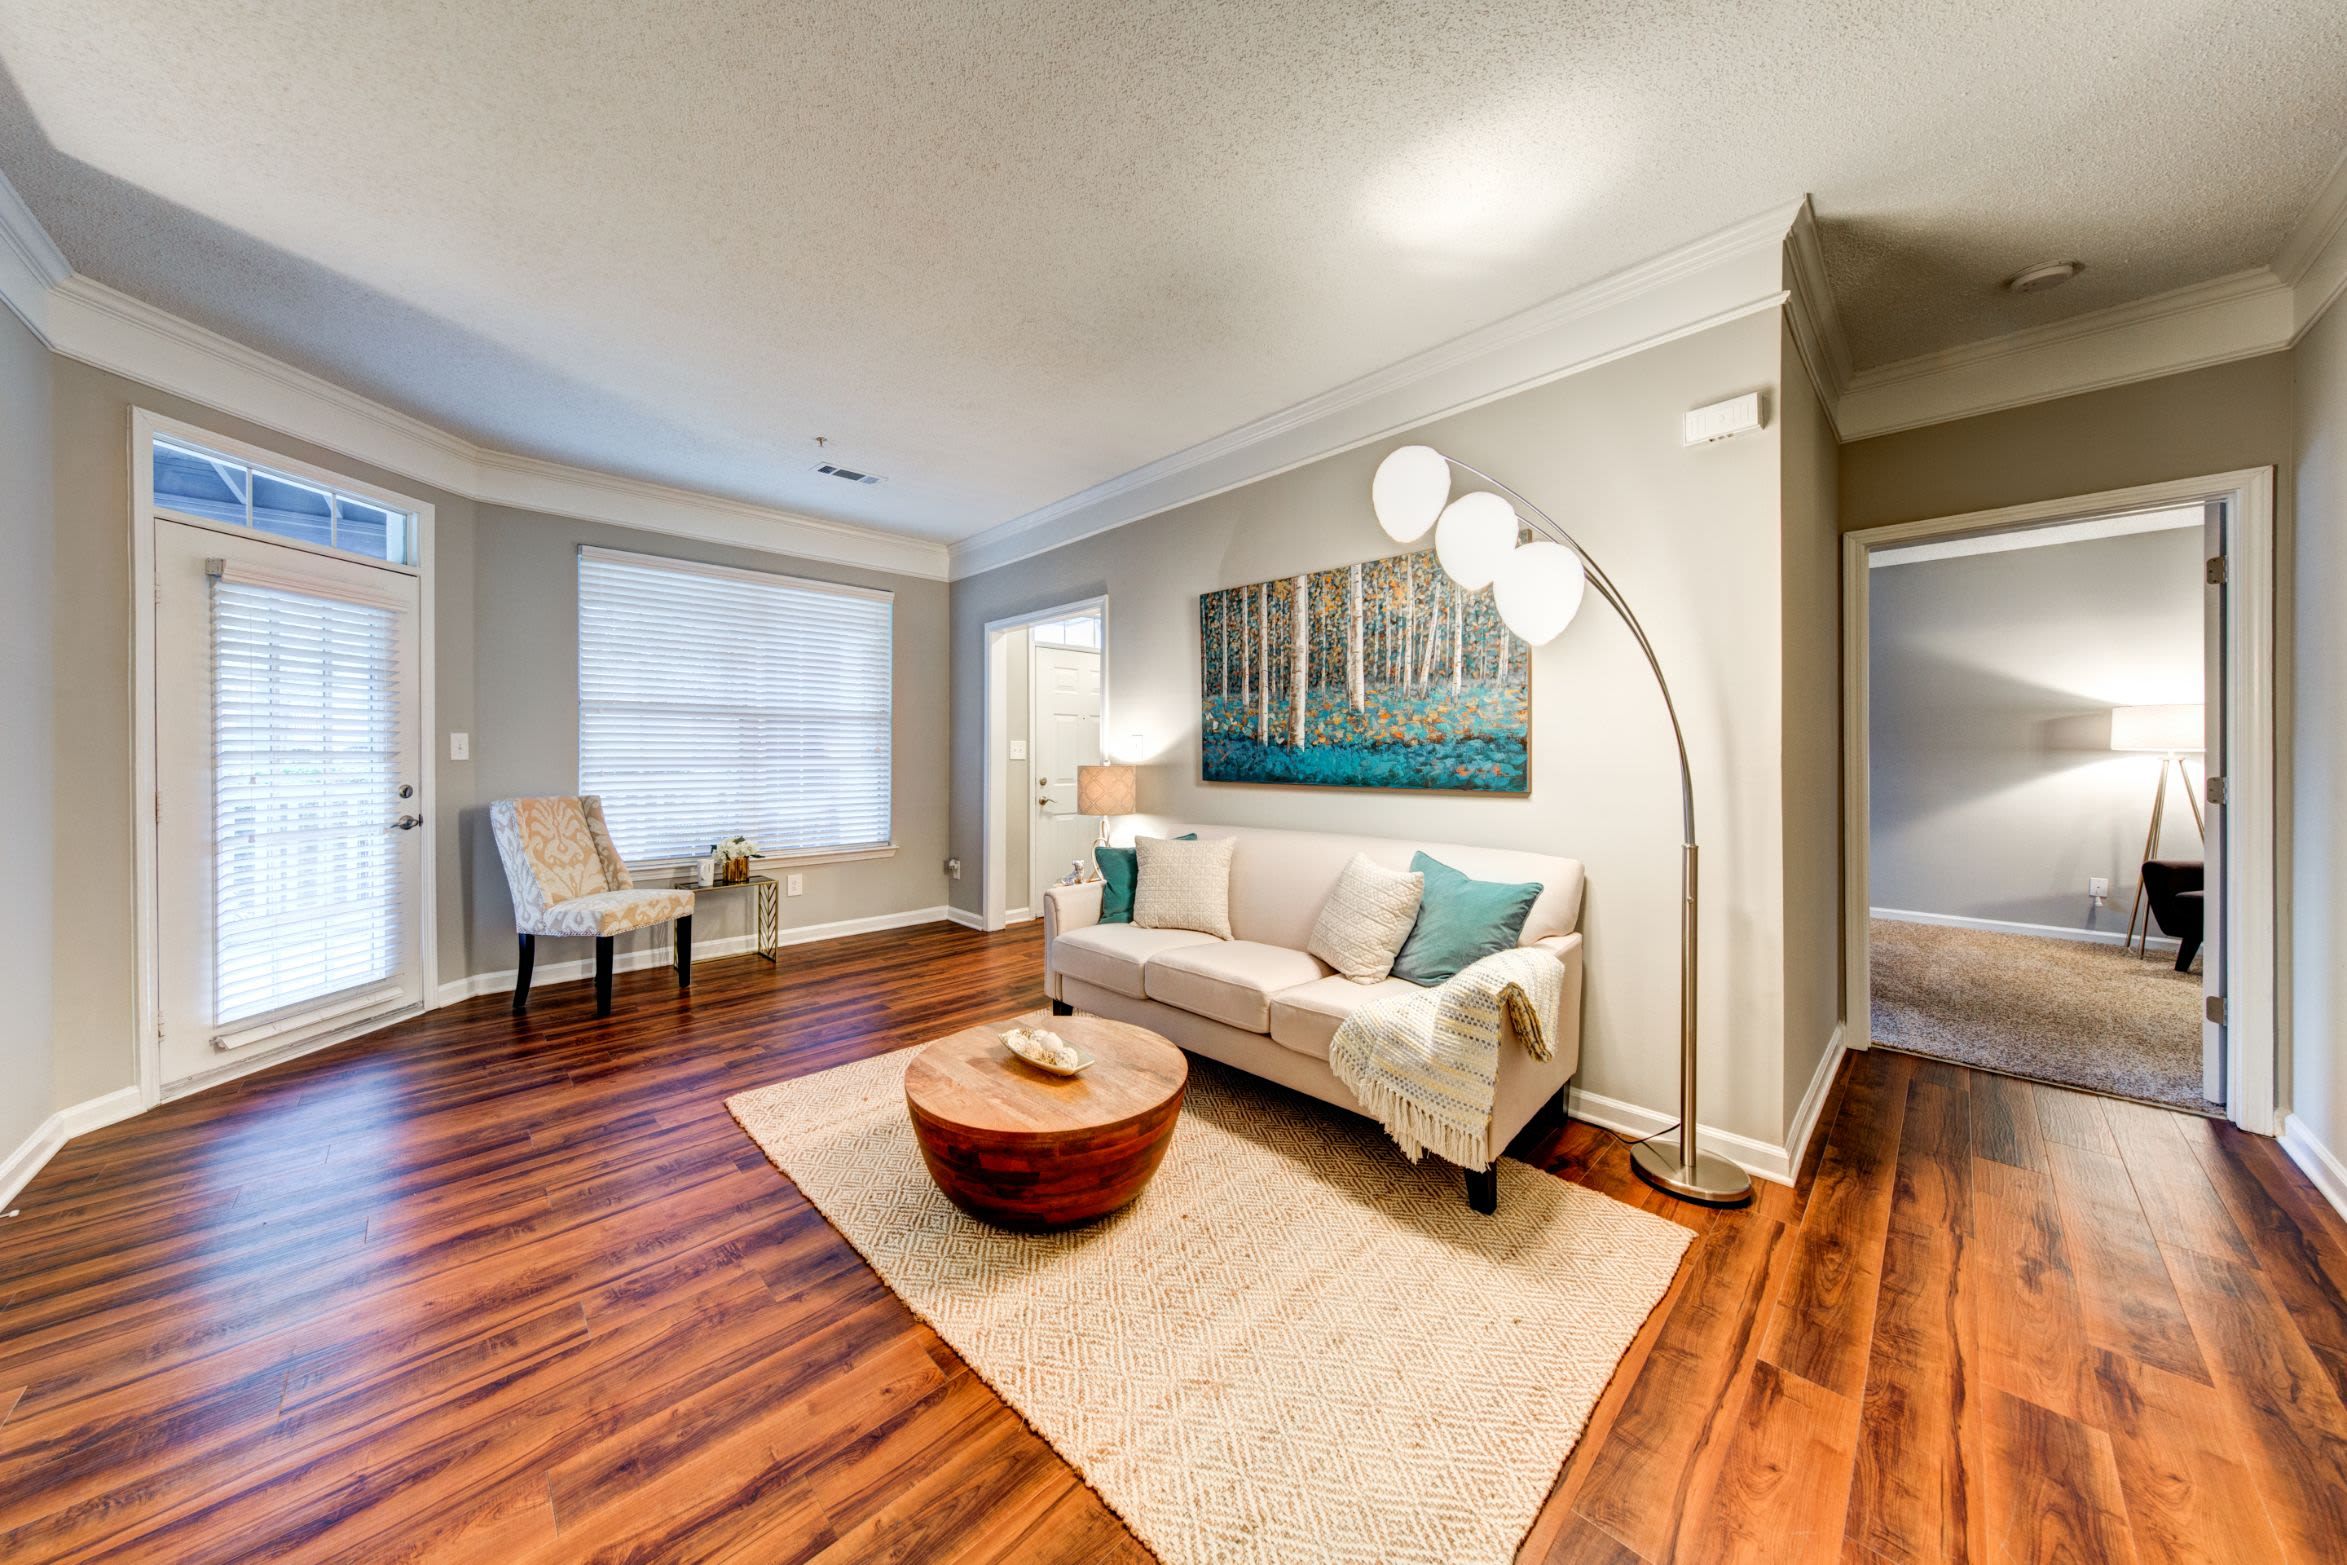 Spacious living area with large windows at Marquis on Edwards Mill in Raleigh, North Carolina